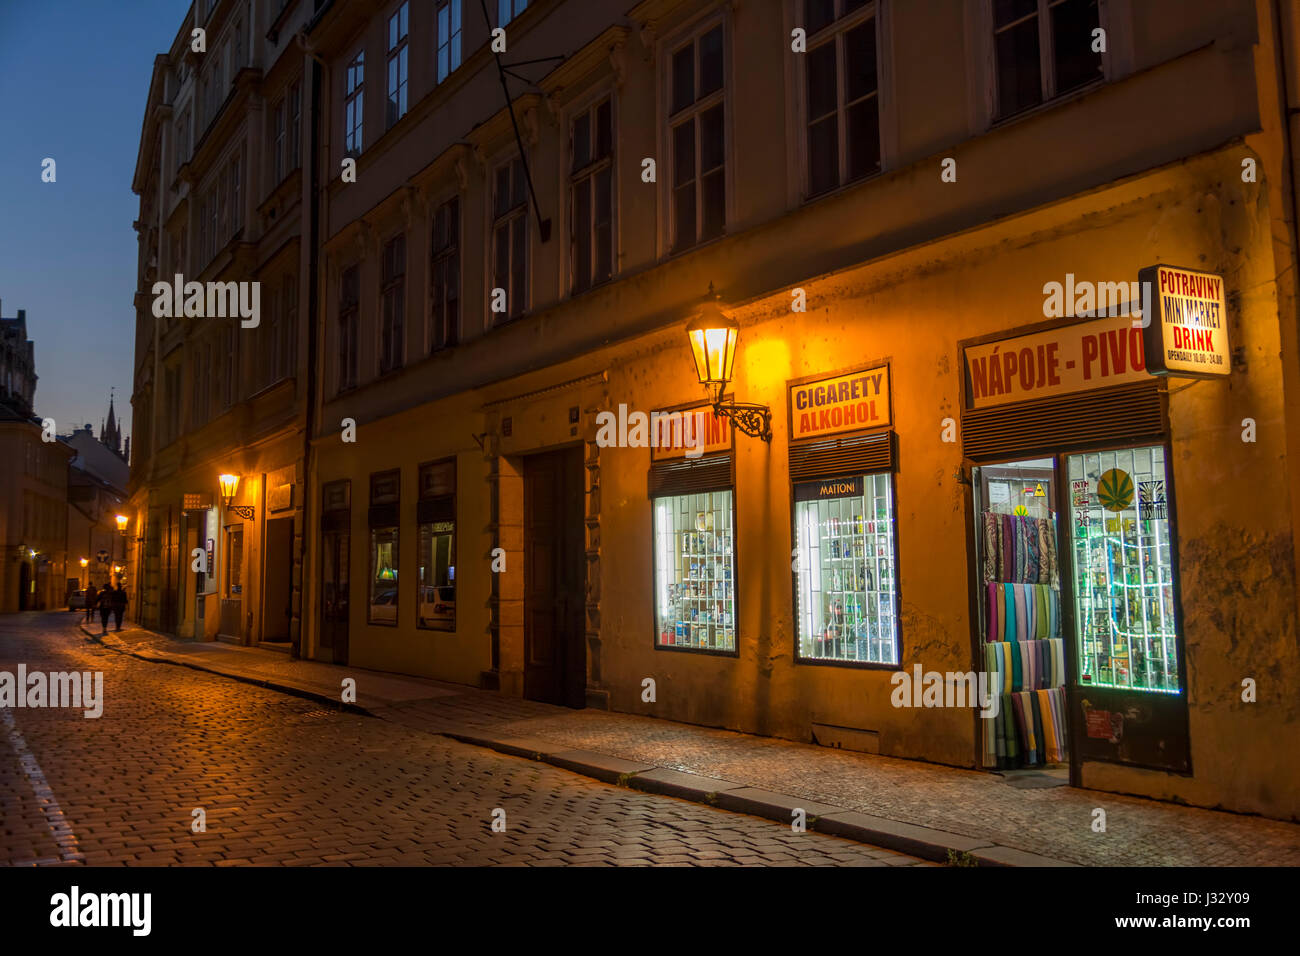 Store Door Exterior Night Stock Photos & Store Door Exterior Night ...